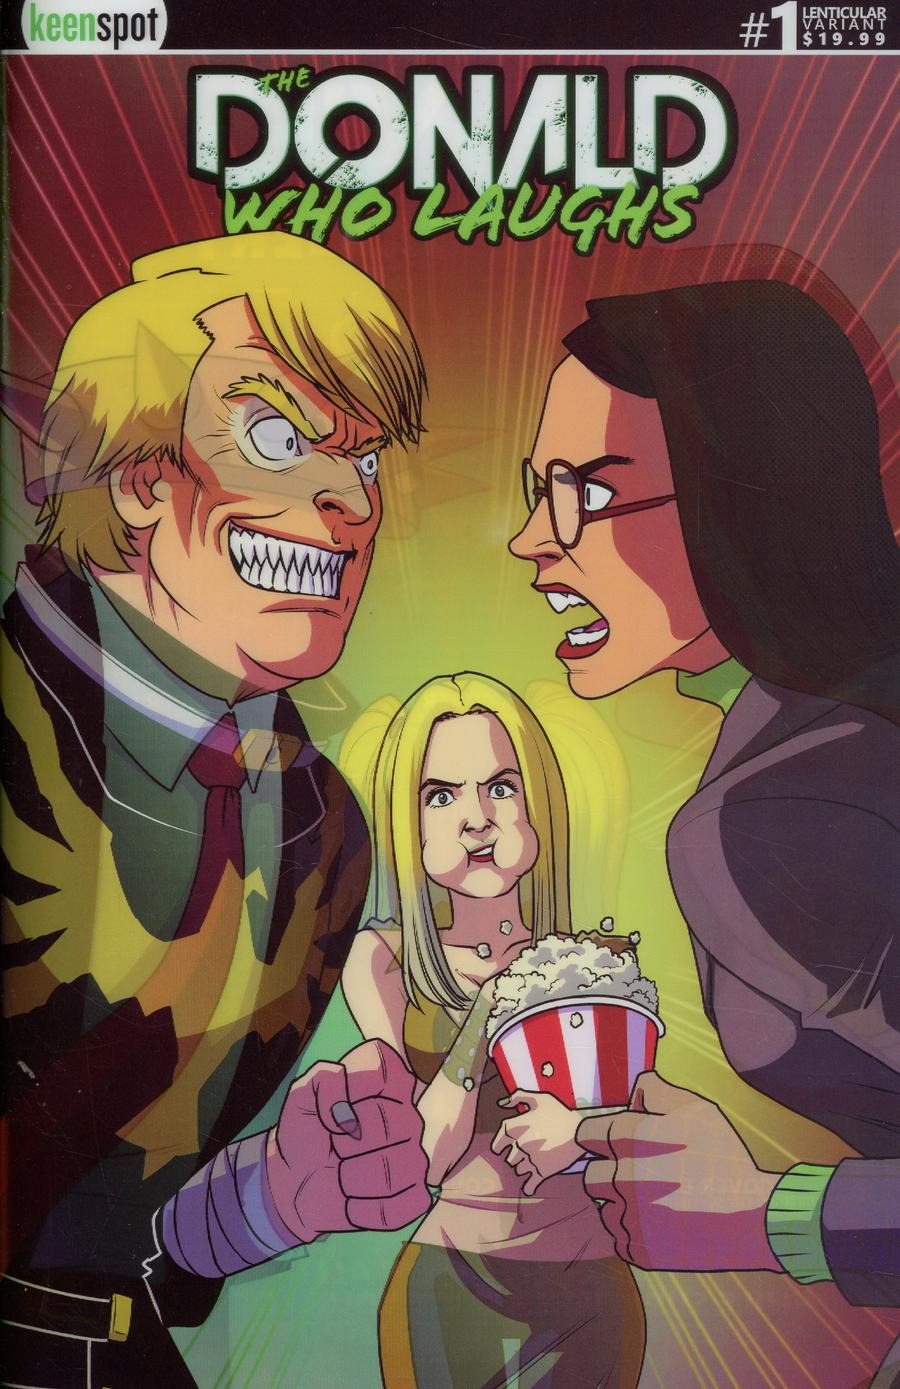 Donald Who Laughs #1 Cover E Variant Shawn Remulac Lenticular Cover